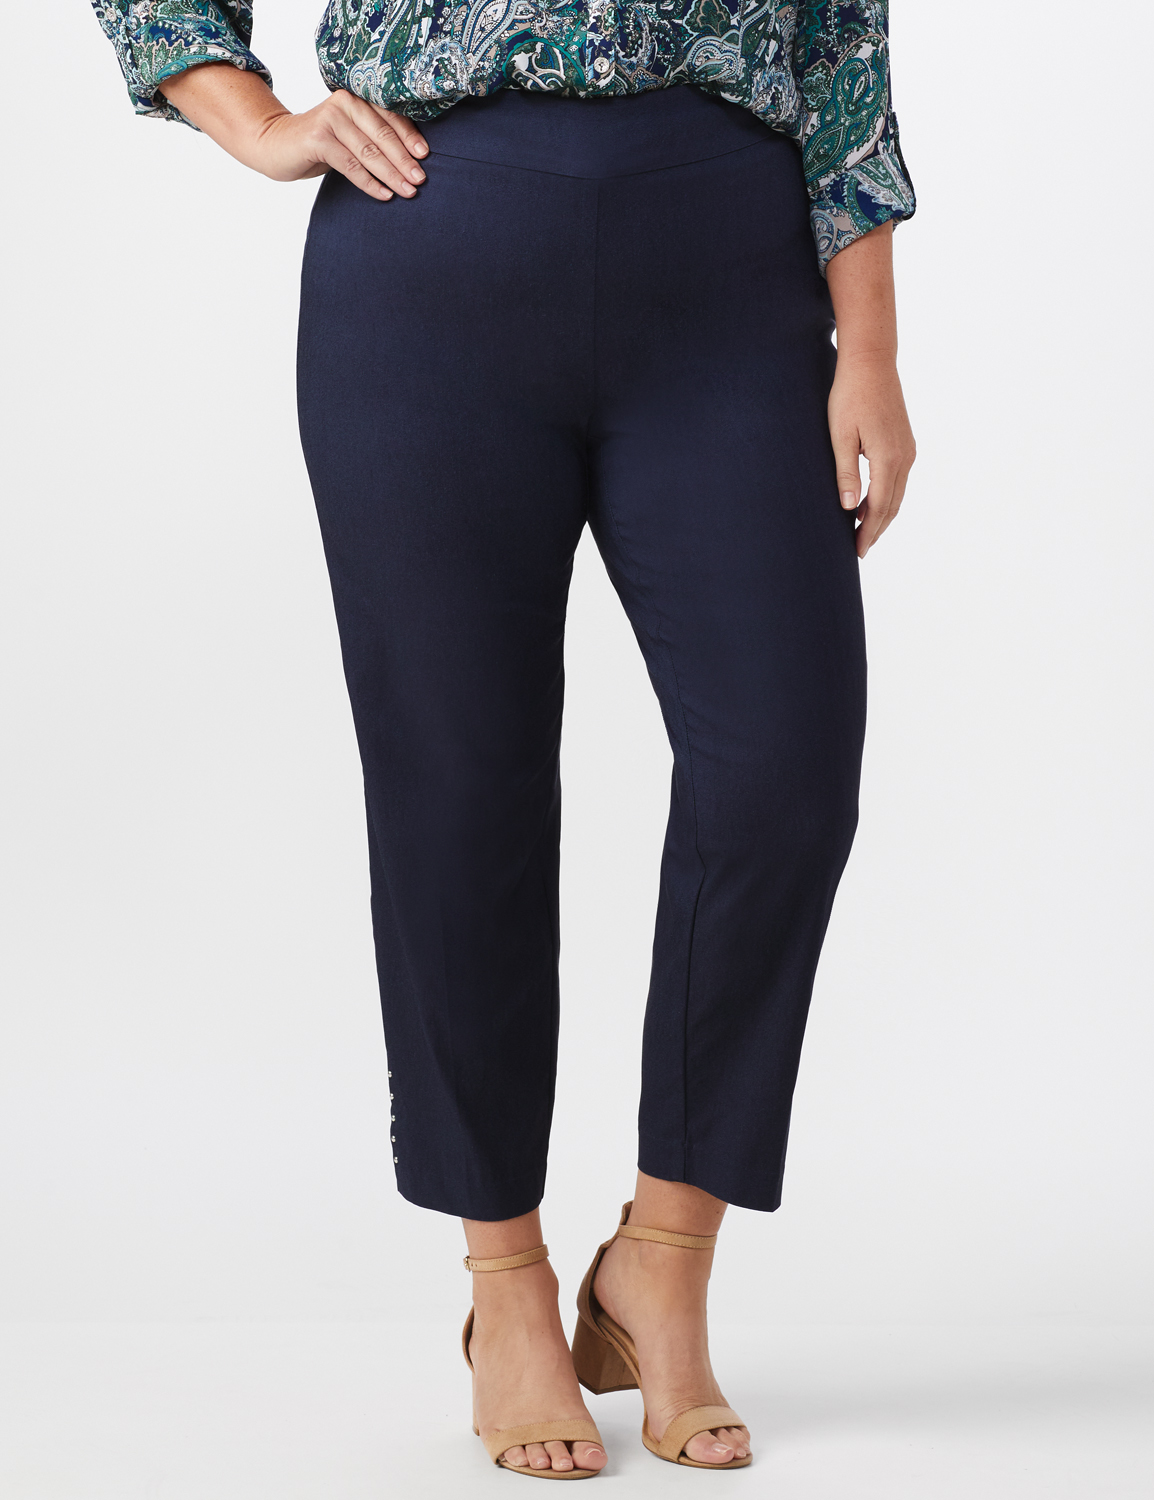 Roz & Ali Solid Superstretch Tummy Panel Pull On Ankle Pants With Rivet Trim Bottom - Plus - Dark Denim - Front